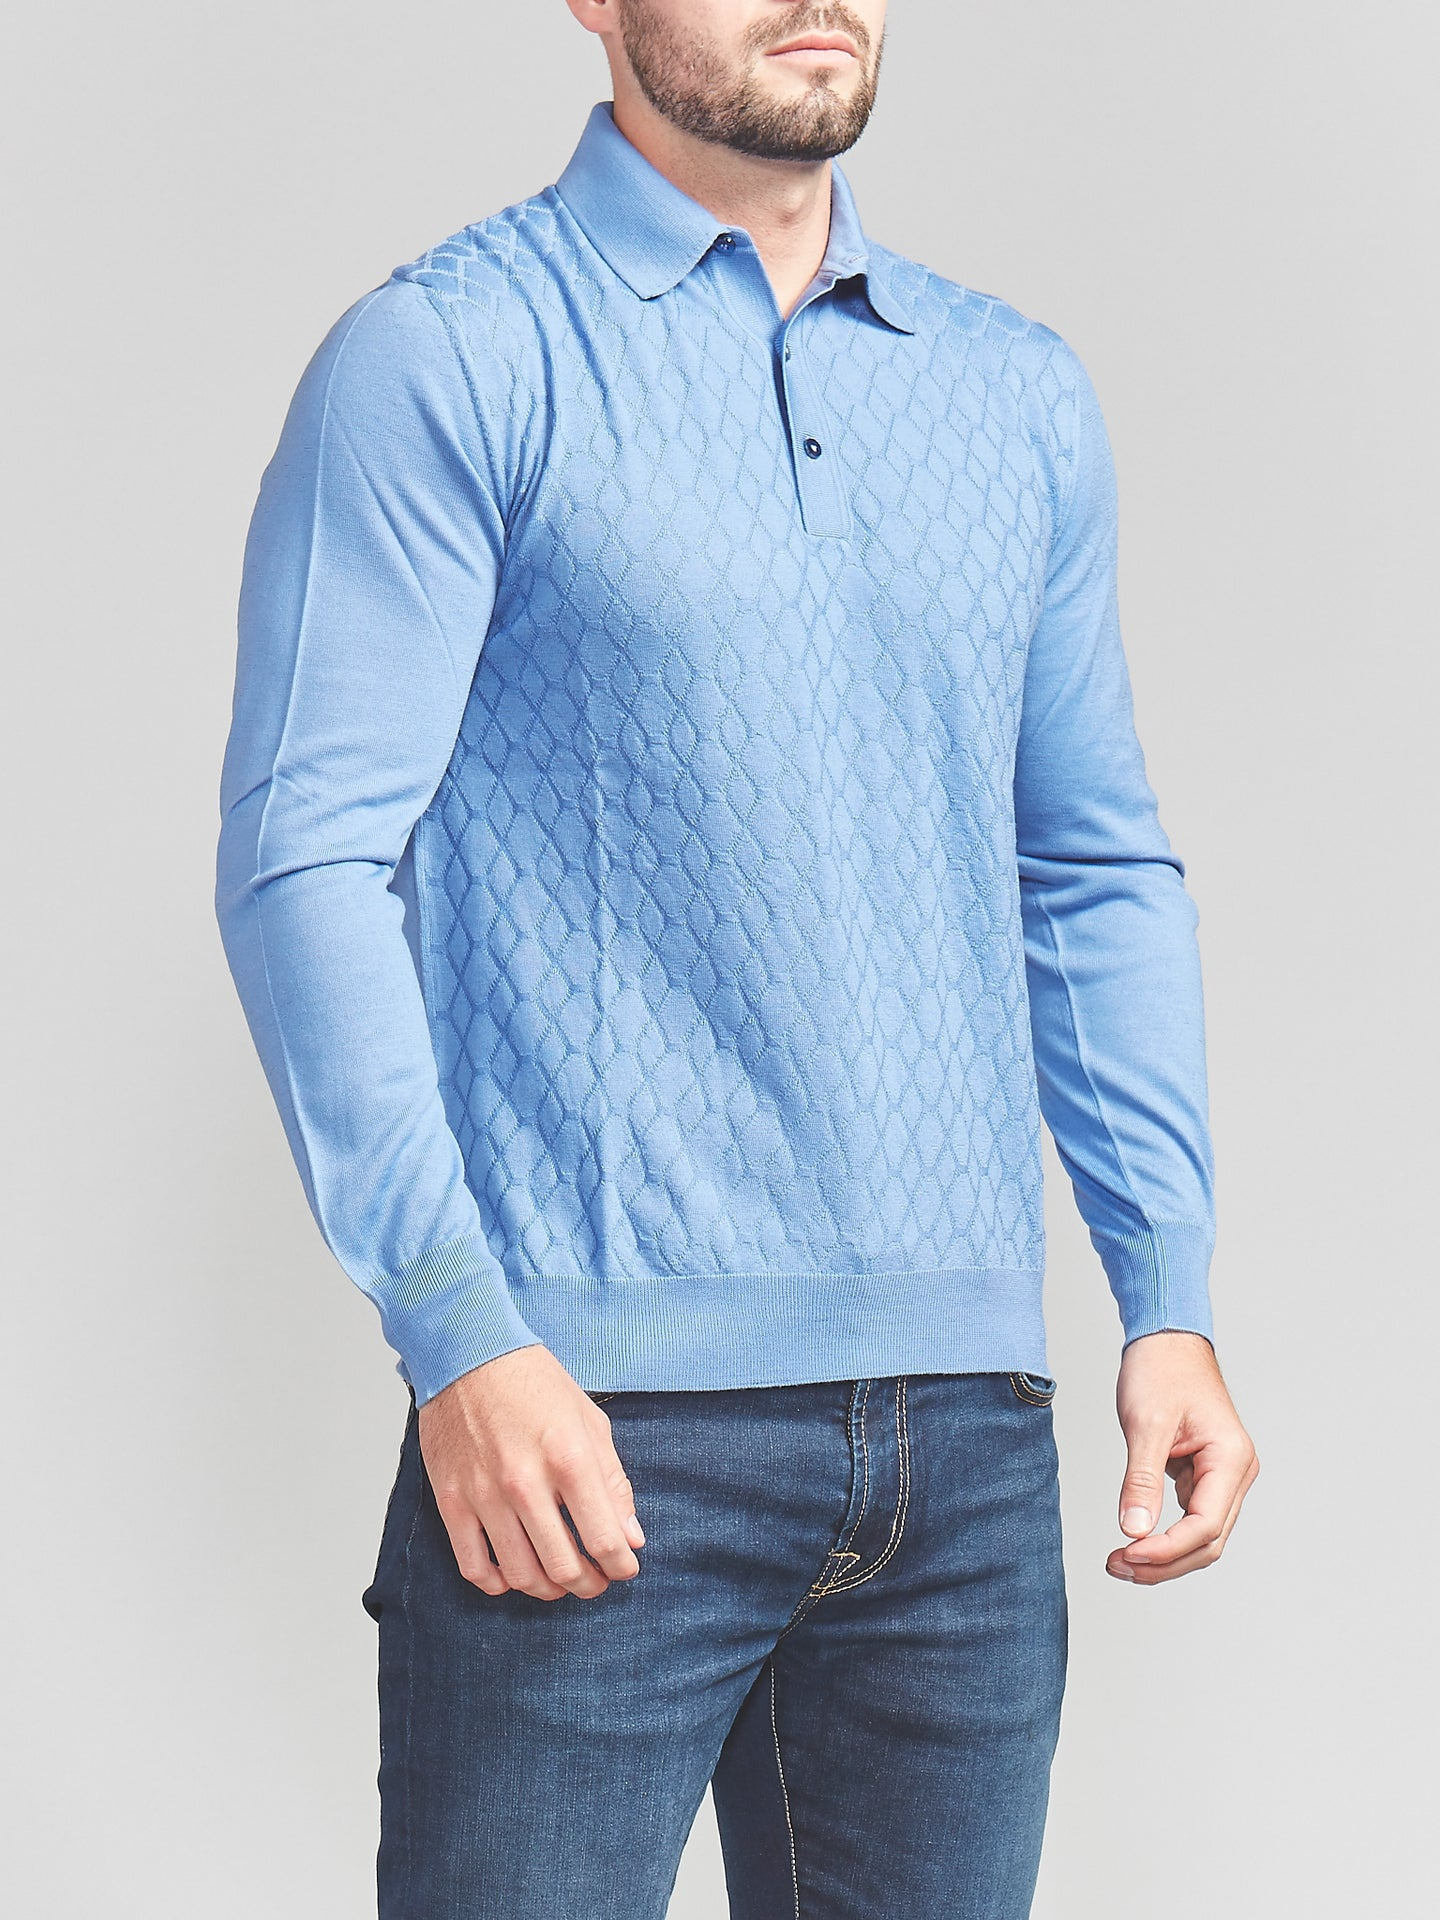 Bertolo Baggio Cashmere & Wool Blend Polo (Blue)